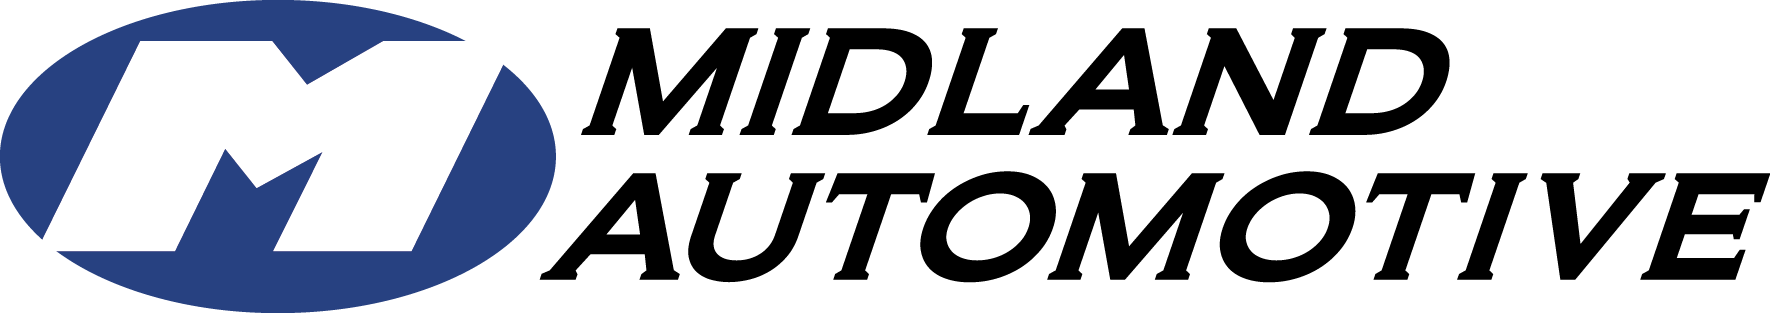 Midland Automotive Services